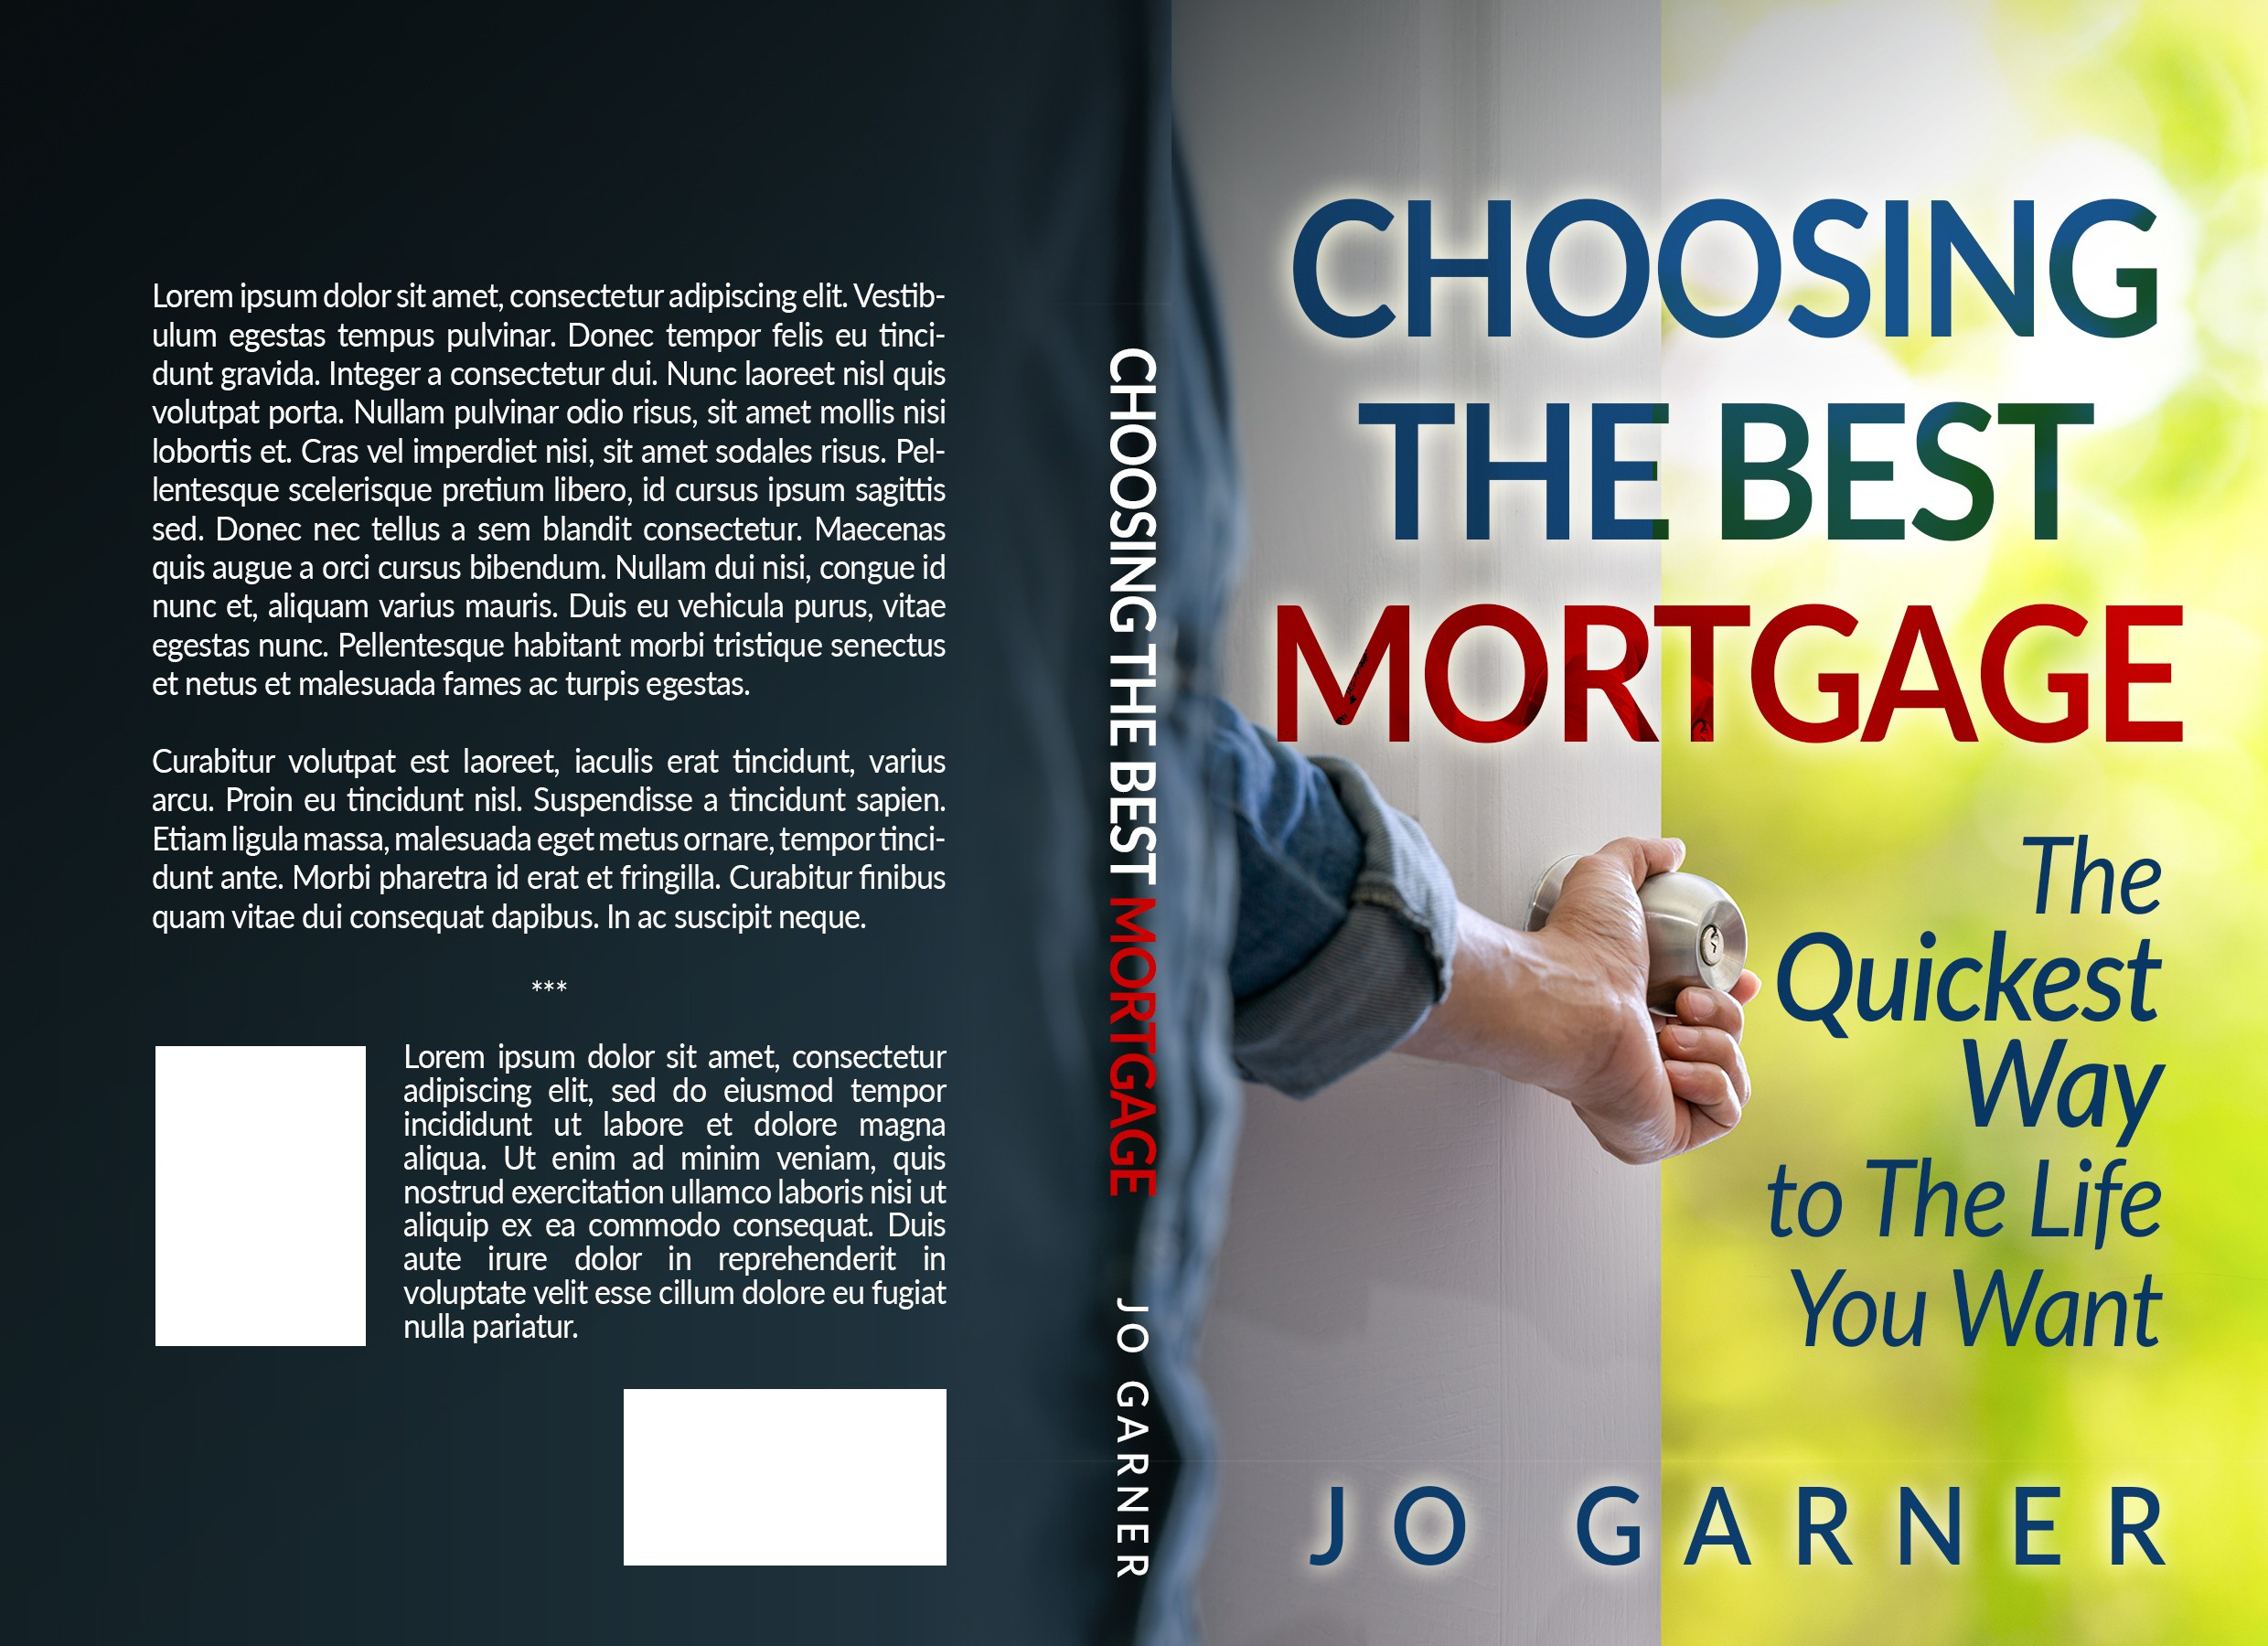 Full cover for a mortgage guide book for home buyers